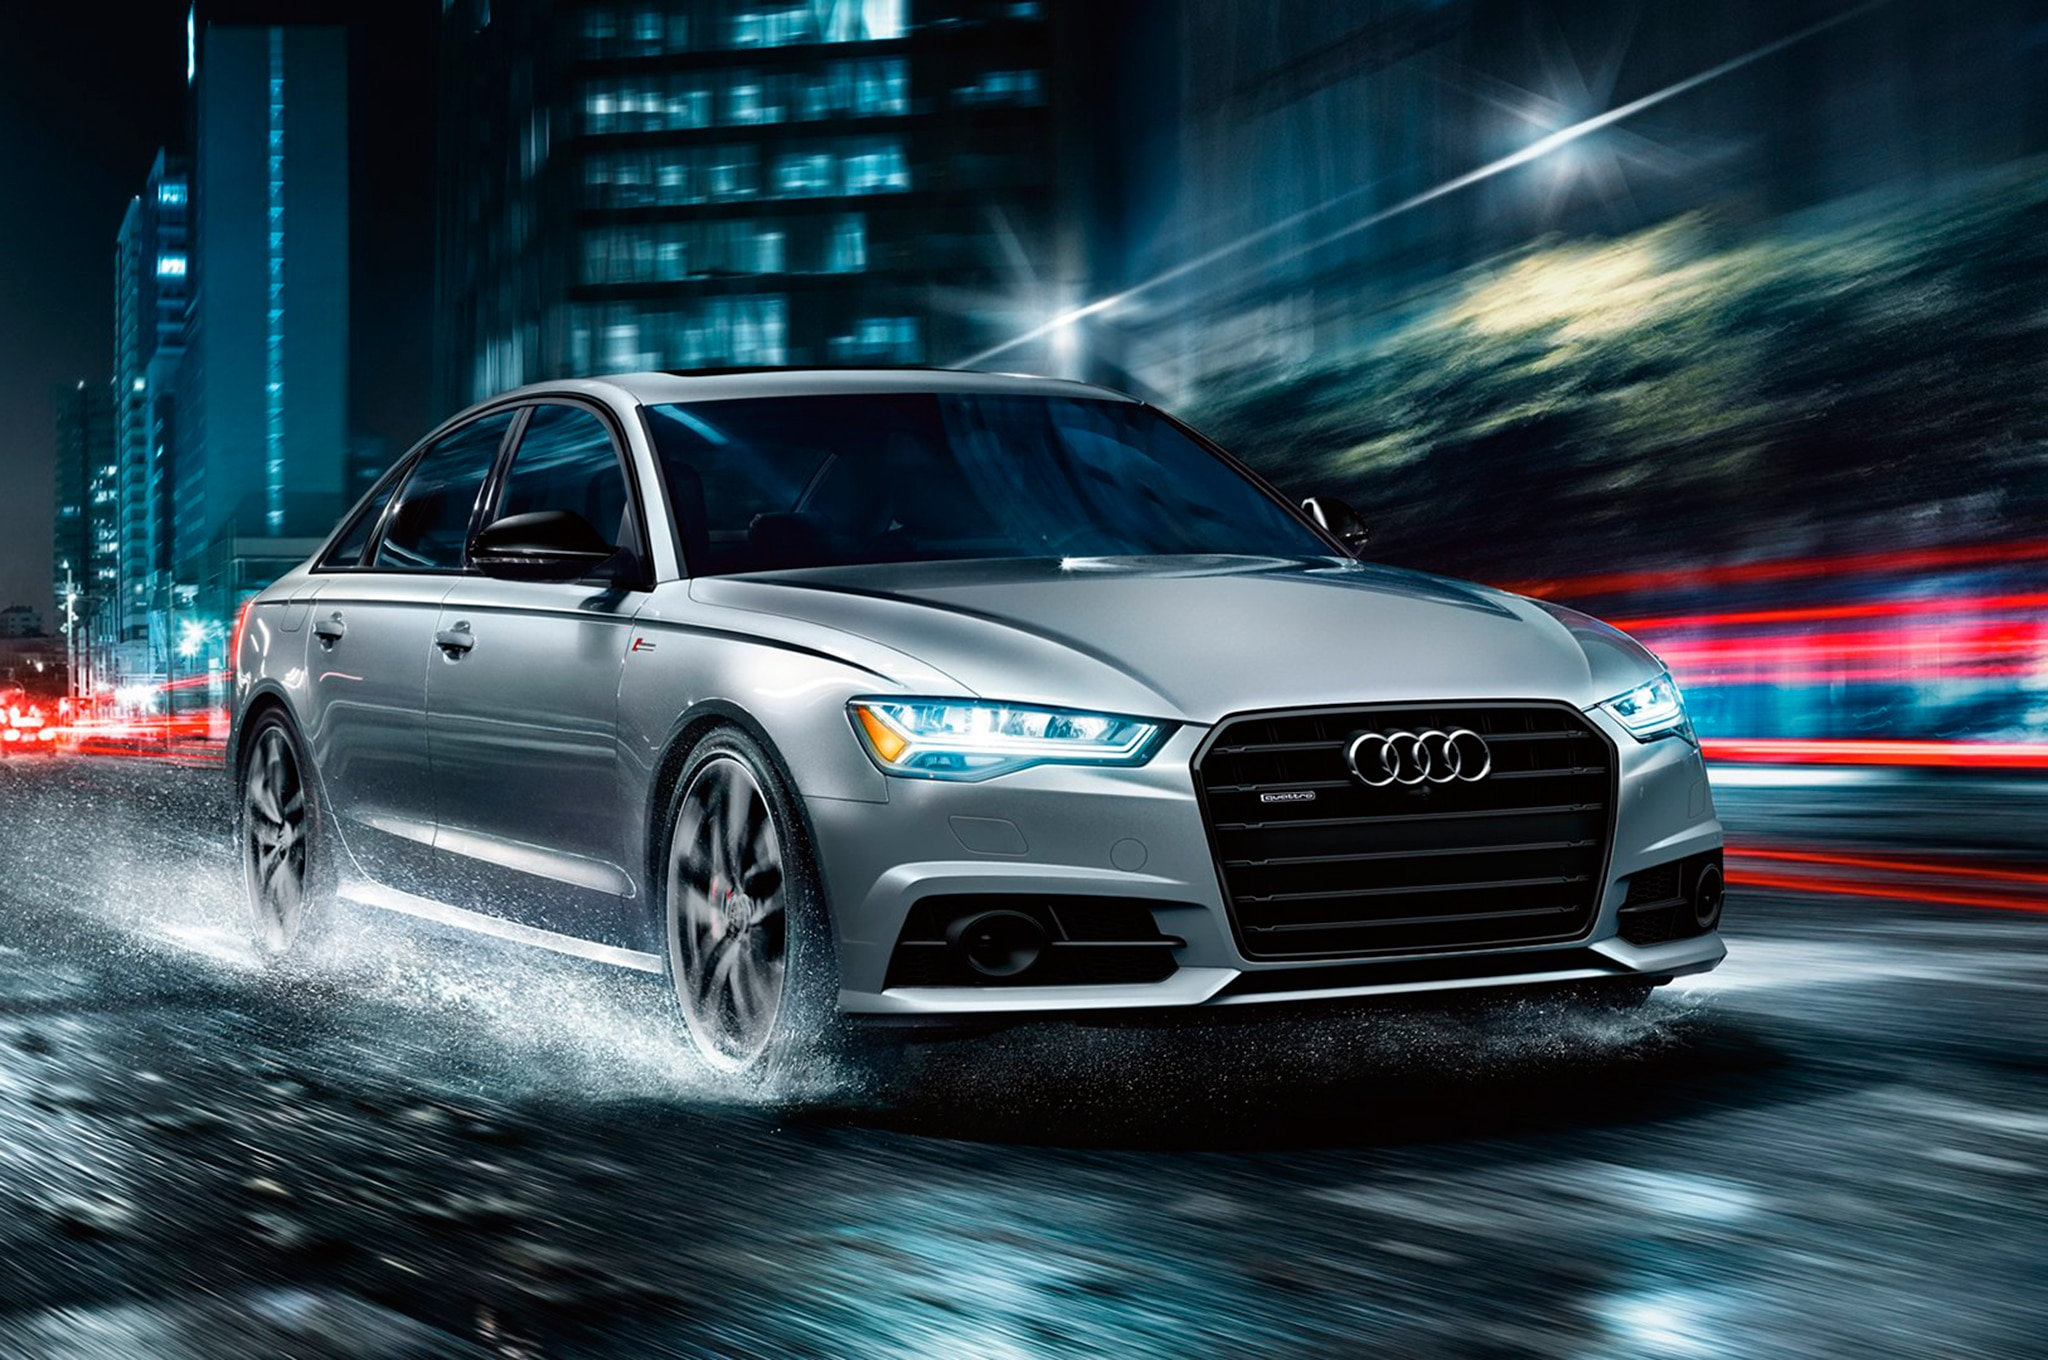 2017 Audi A6 and A7 Gain New Tech and Mild Exterior Styling Tweaks | Automobile Magazine